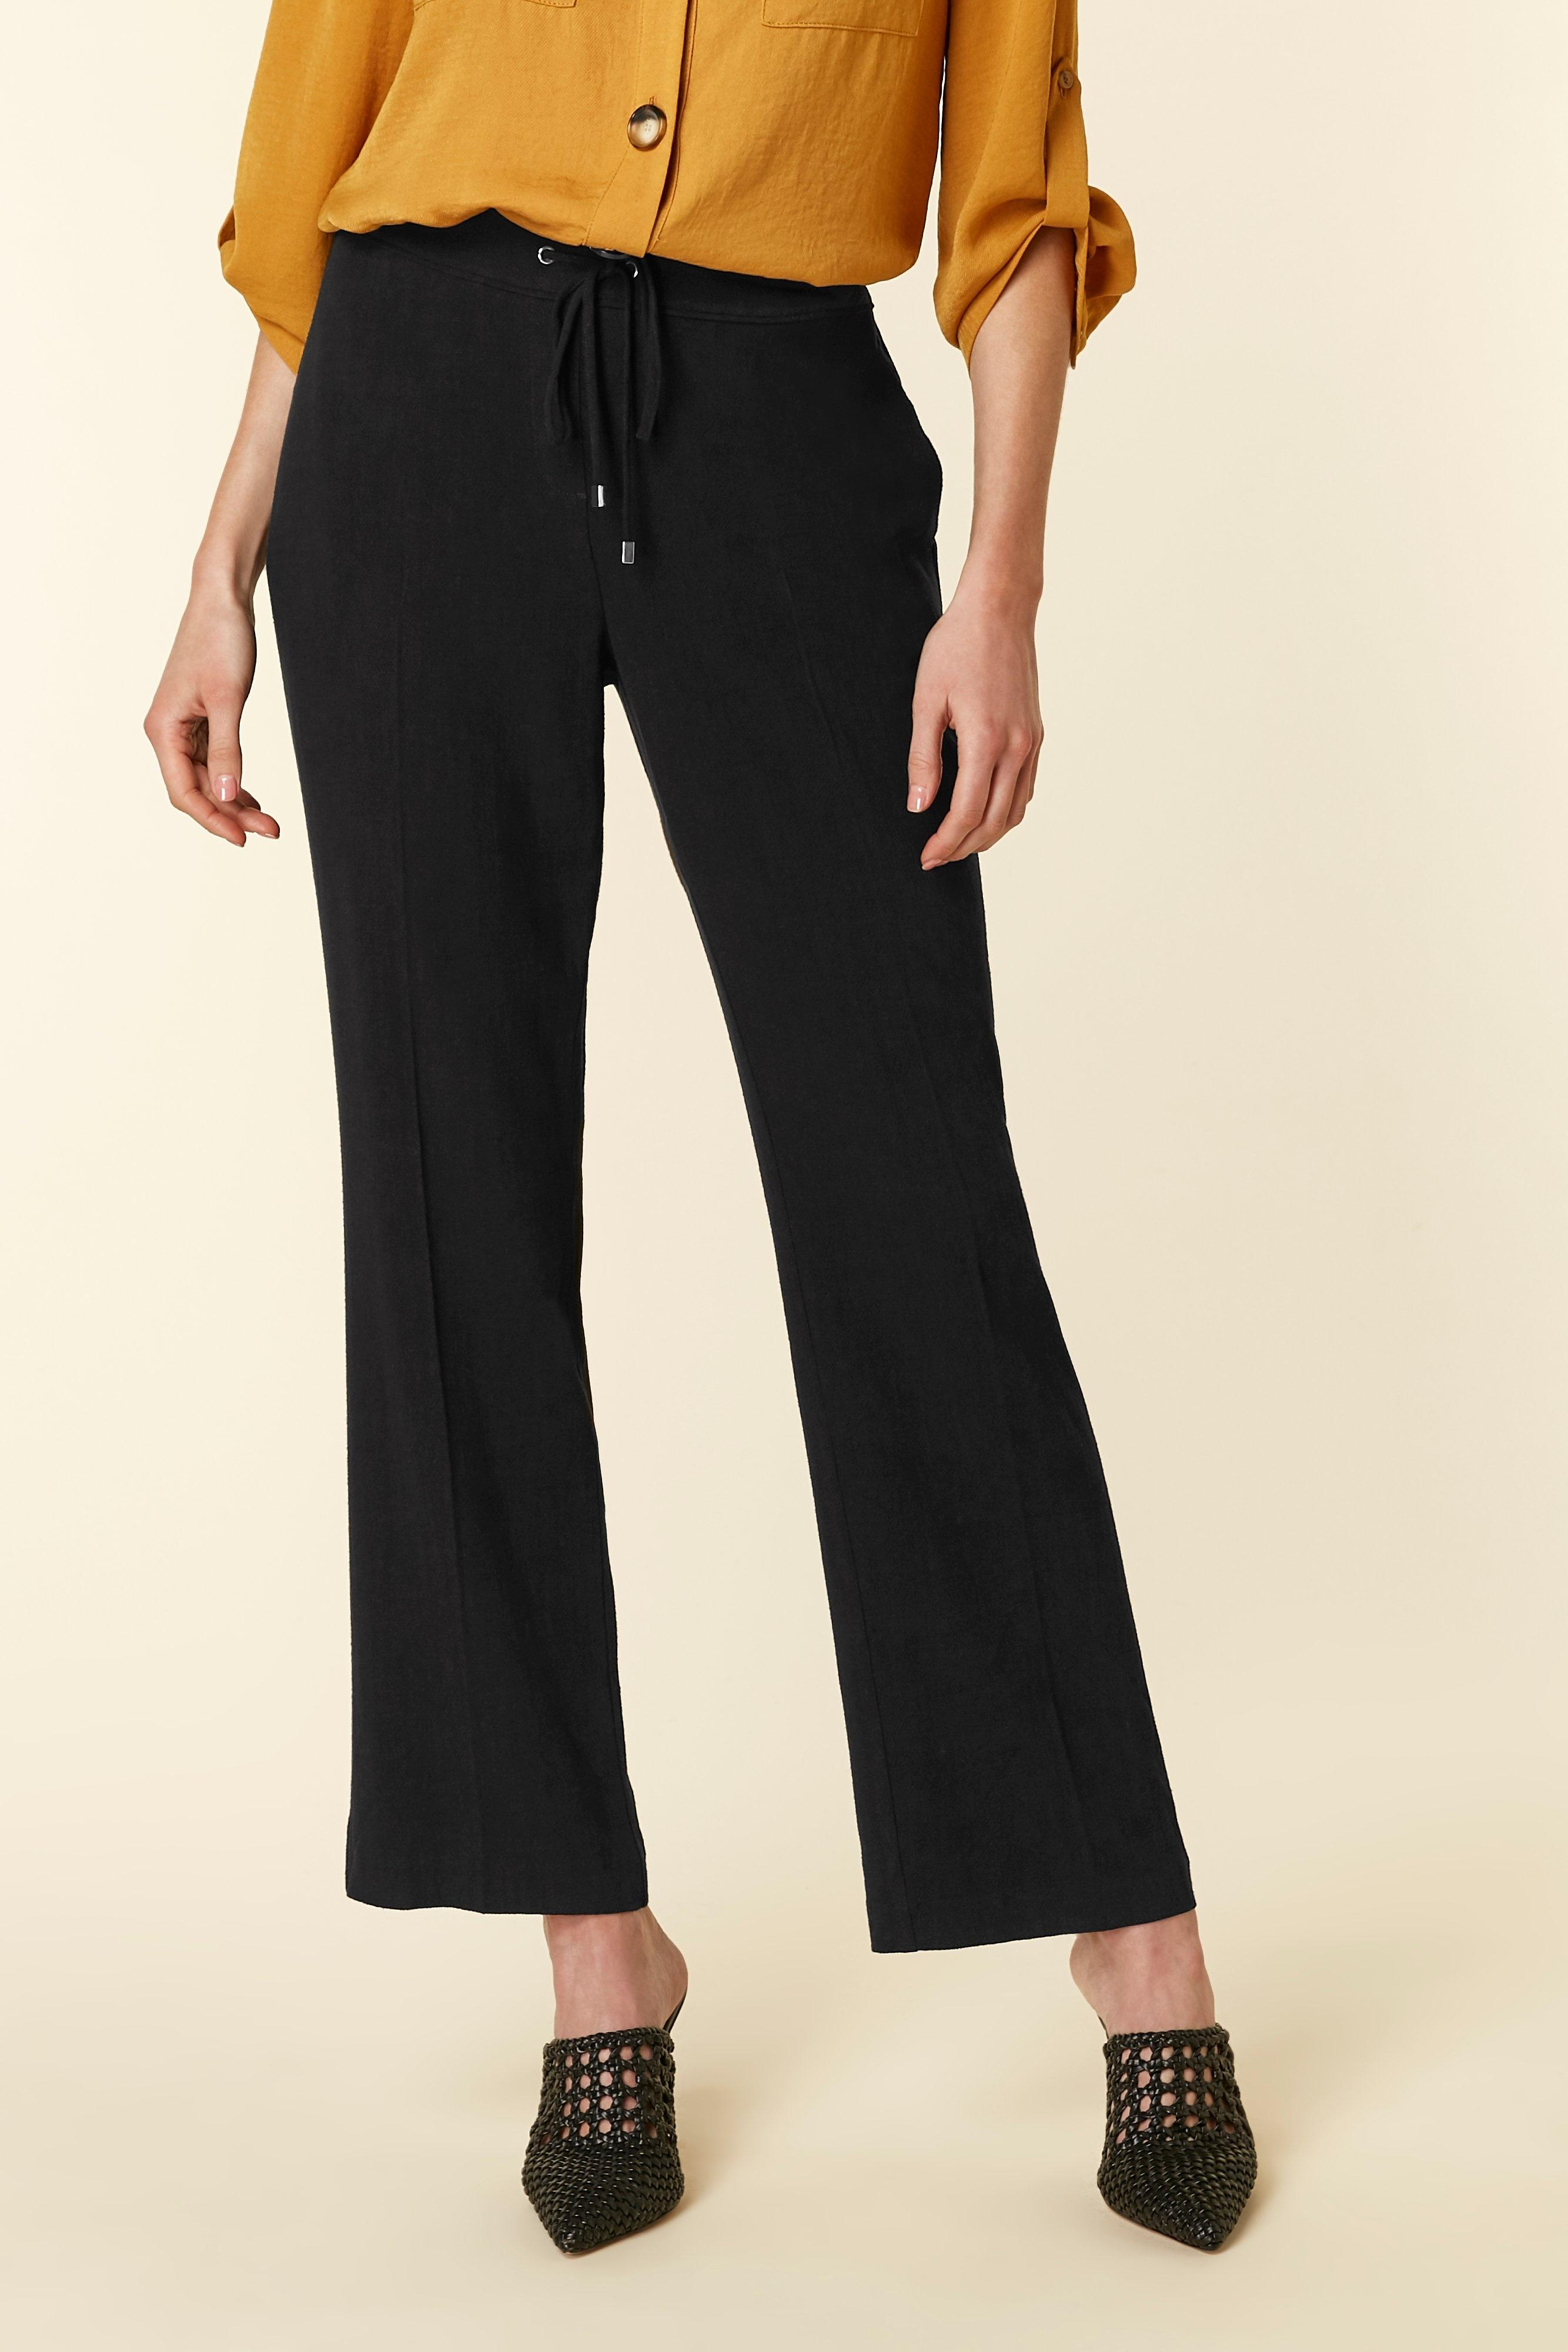 f029dc591a9b5 Wallis - Black Tie Front Linen Blend Trouser - Lyst. View fullscreen